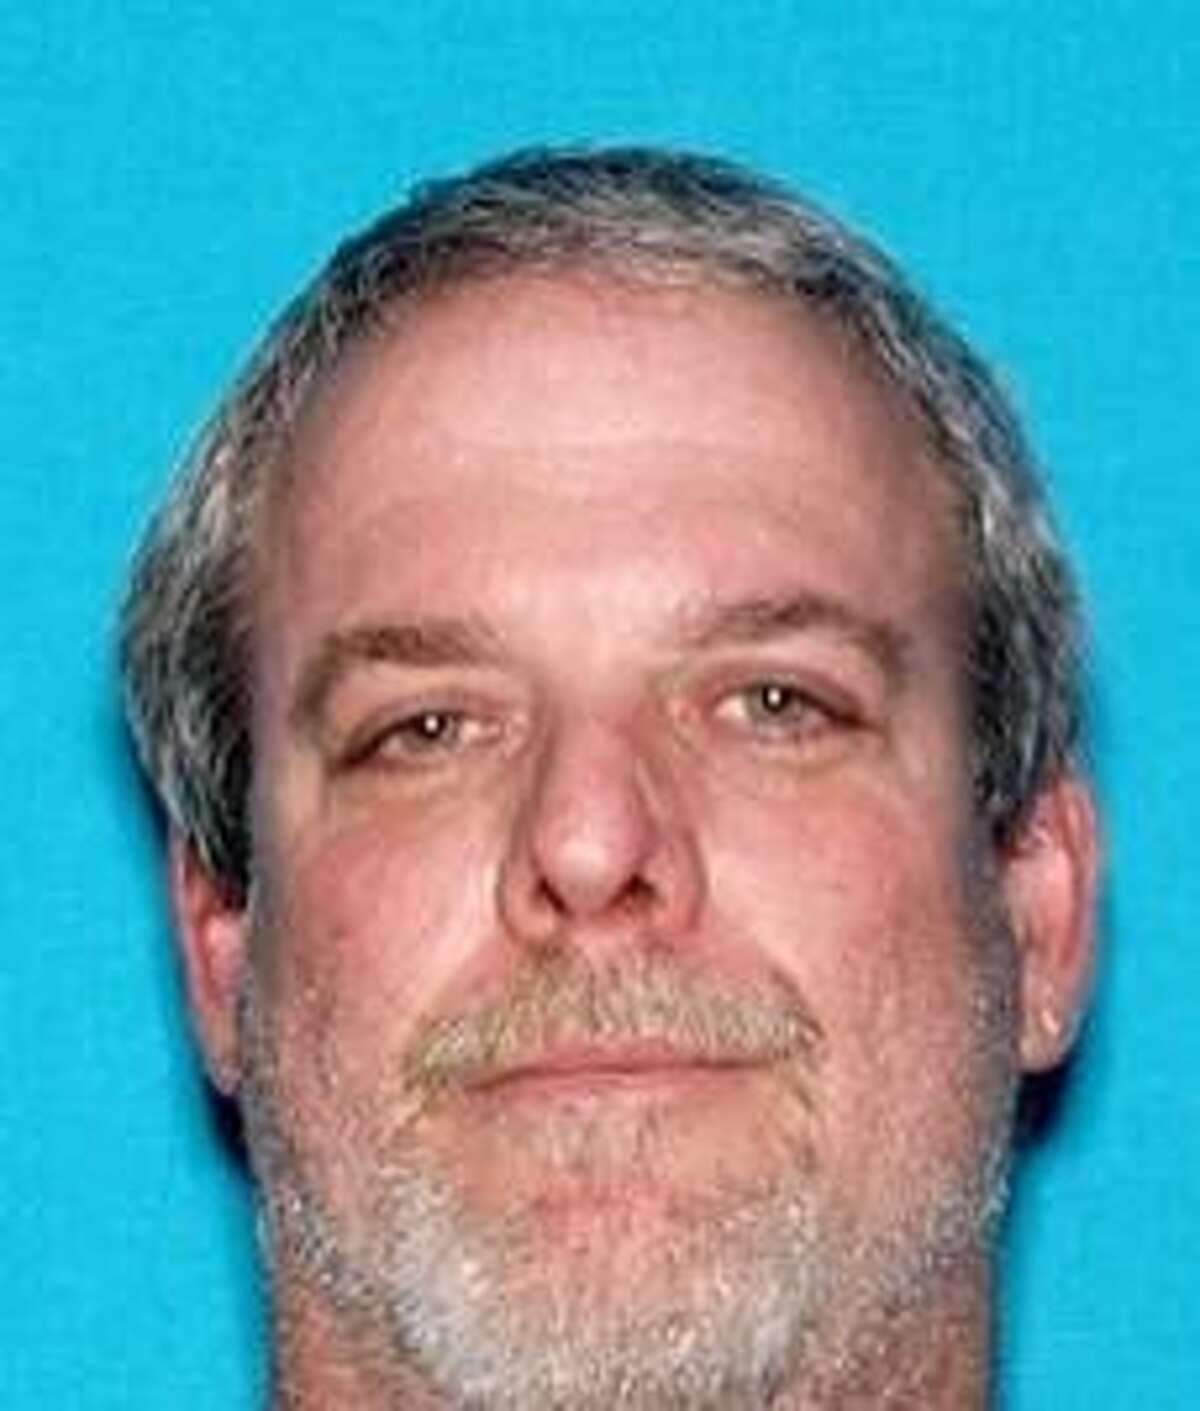 Robert Hathaway is seen in a 2012 photo. Fairfield police say Hathaway hanged himself Feb. 15, 2014, after being interviewed in connection with the death of Priscilla Strole.